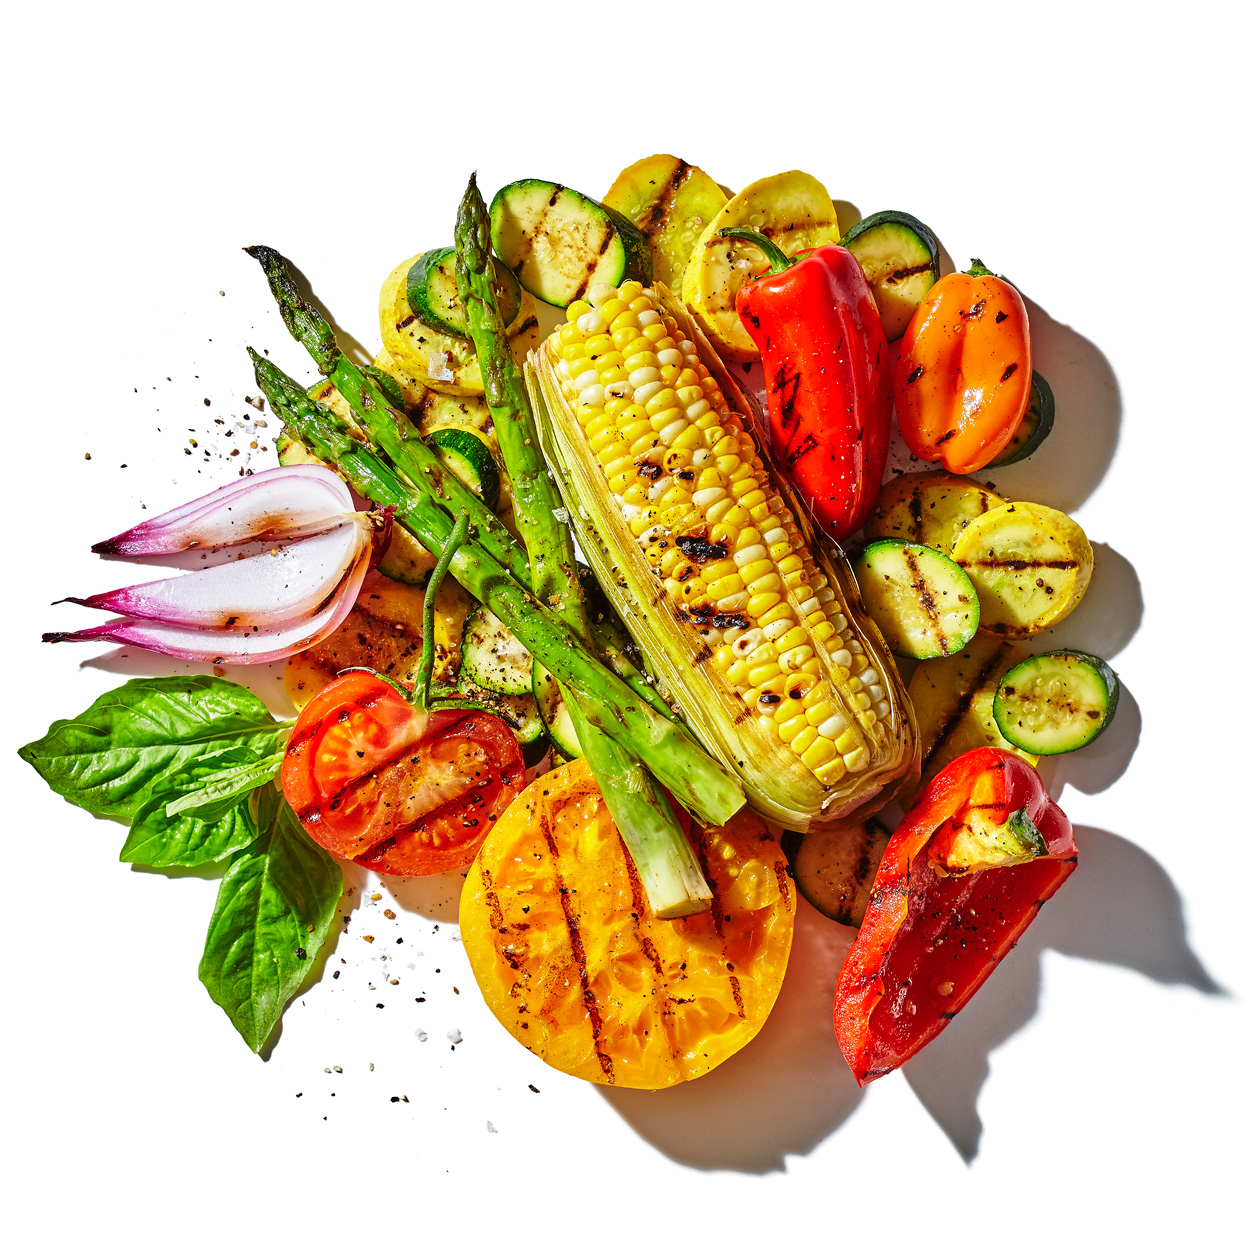 FRESH-MARKET-GRILLING-VEGETABLES